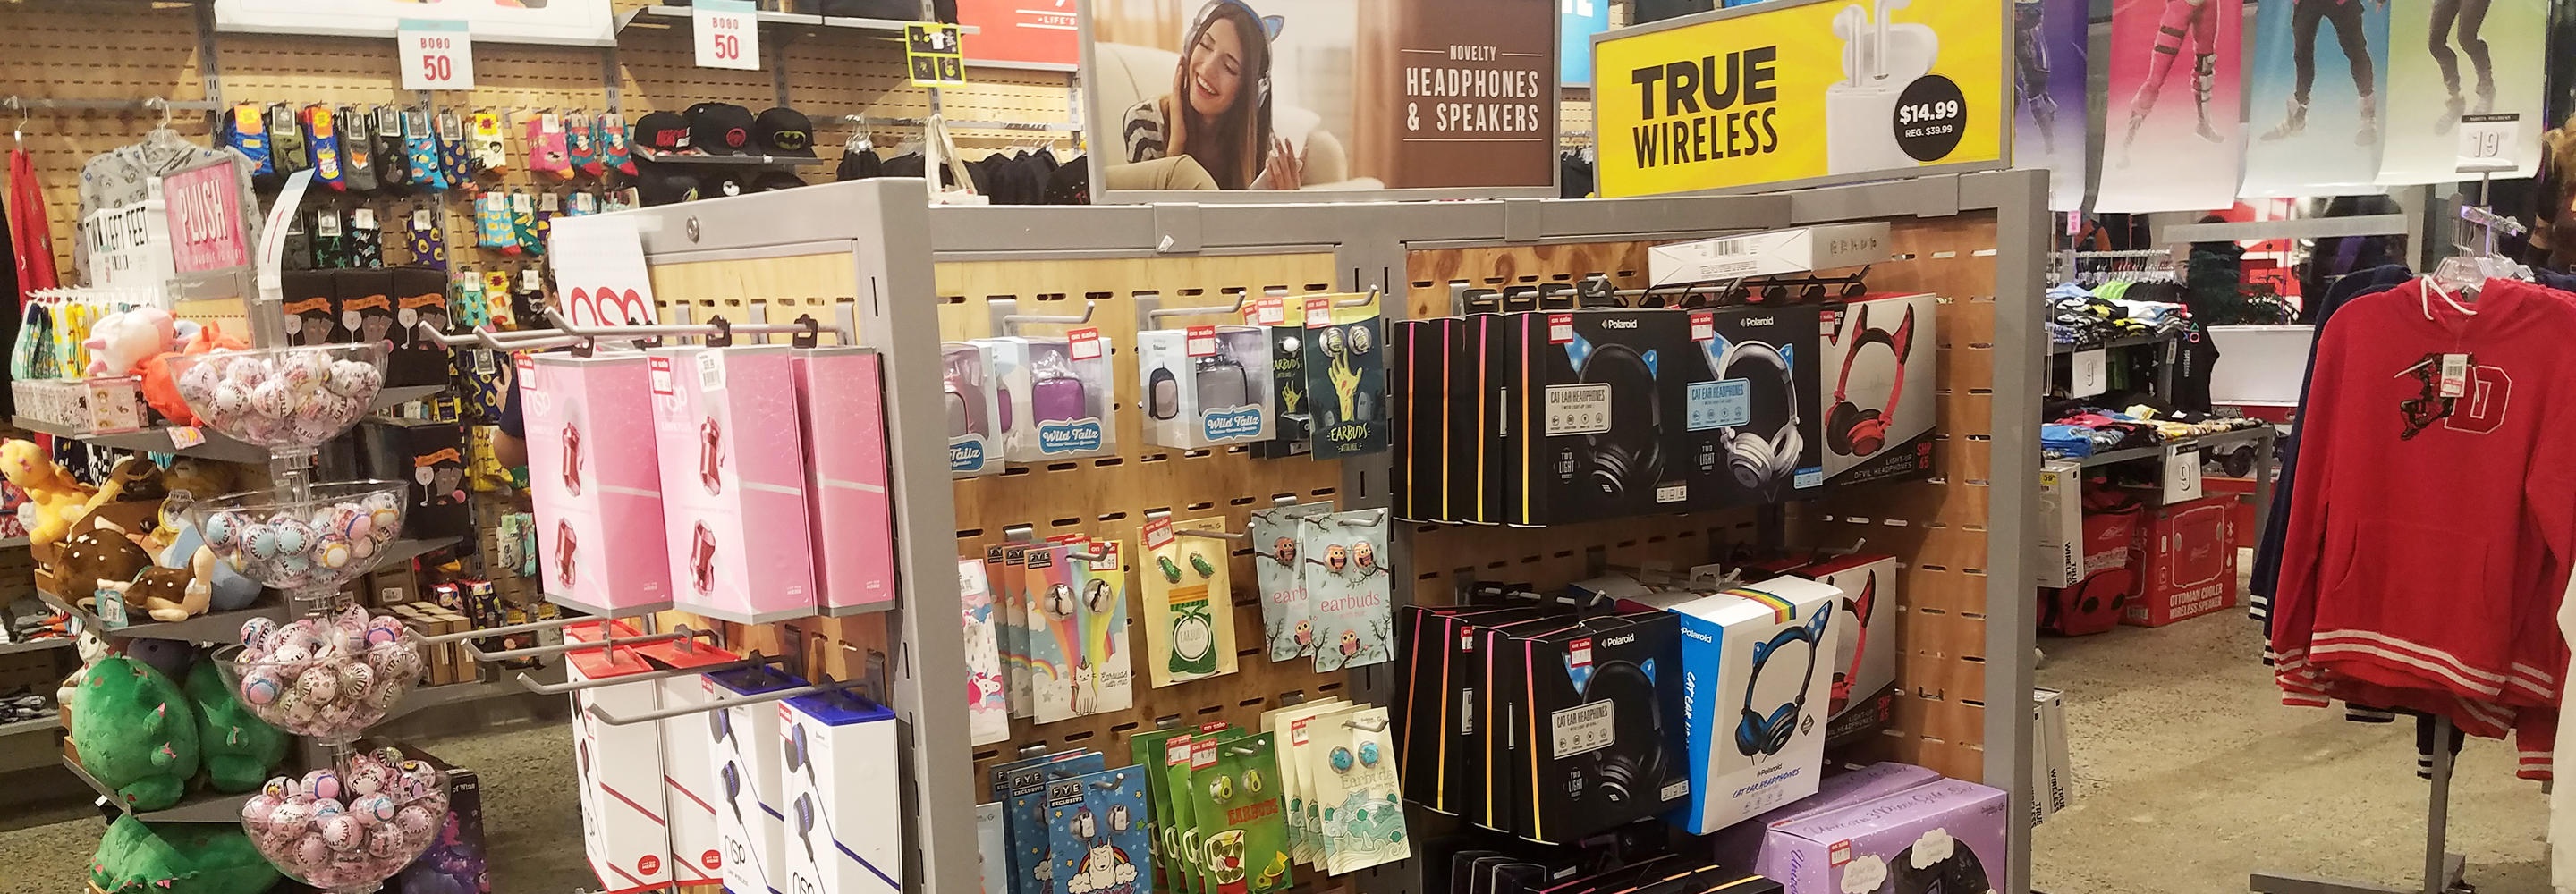 Navigate to image of Electronics section featuring headphones and earbuds in FYE